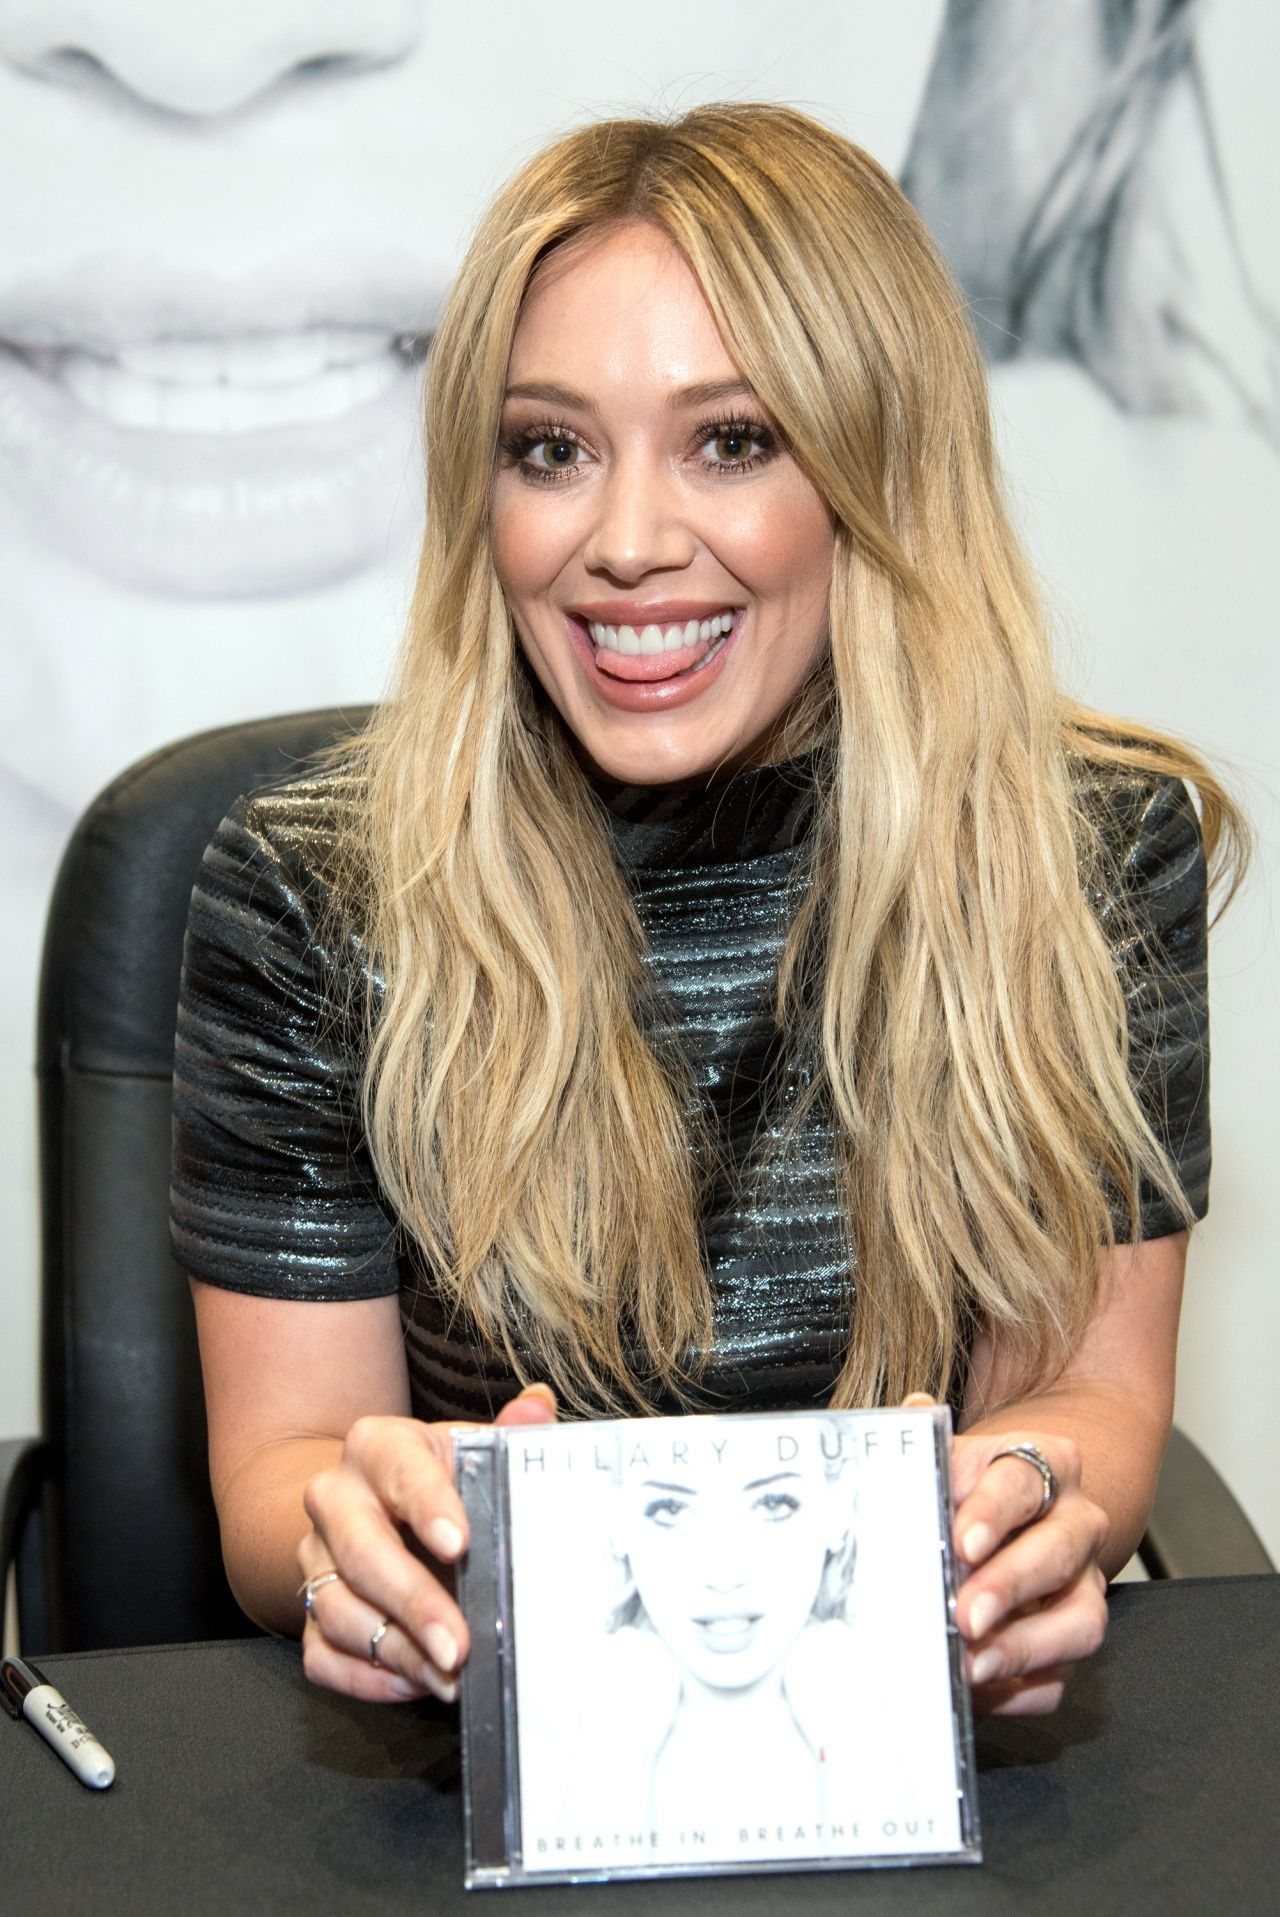 Hilary Duff Tour Breathe In Breathe Out